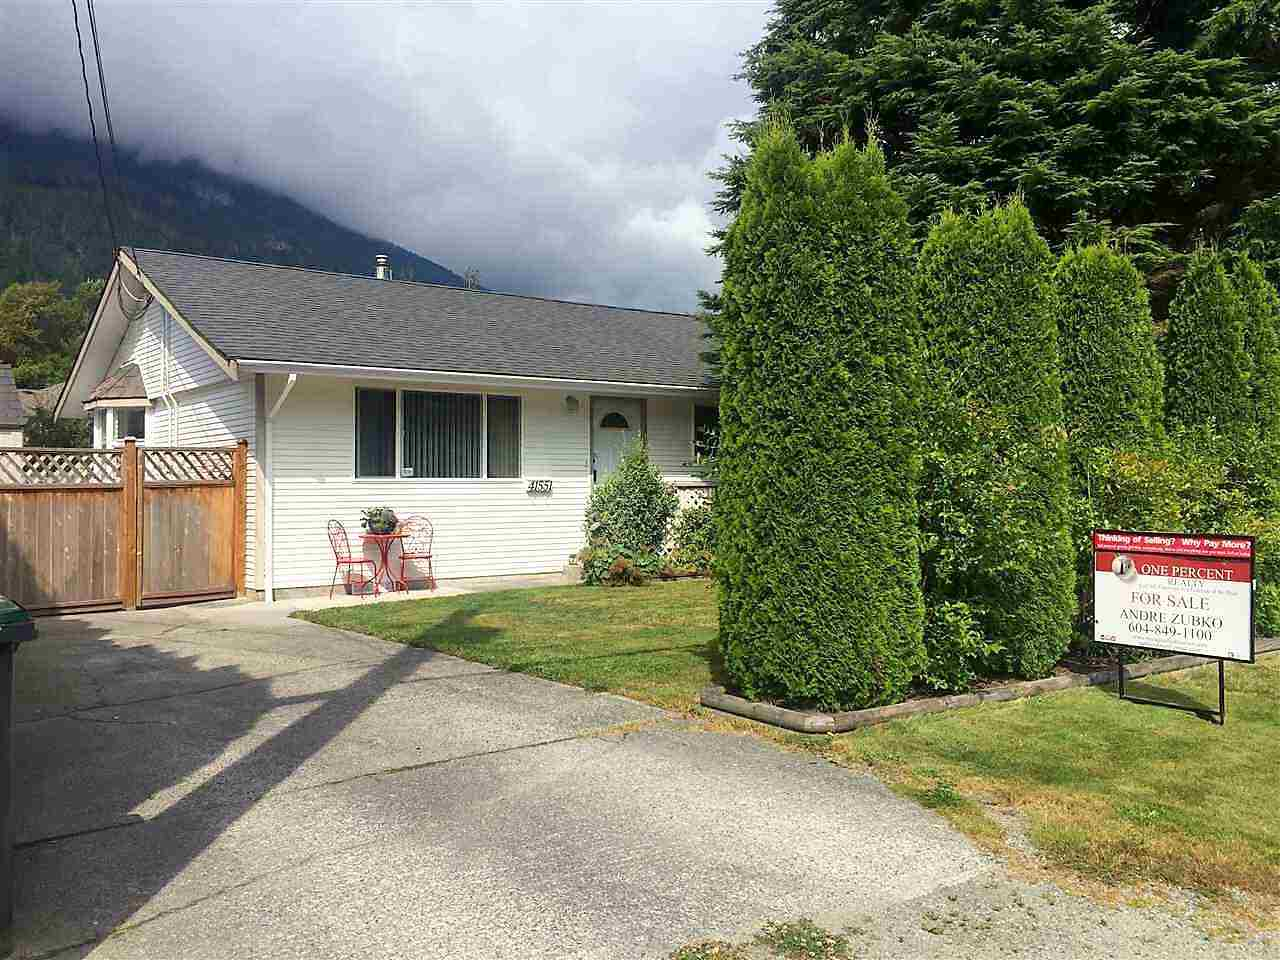 Main Photo: 41551 BRENNAN Road in Squamish: Brackendale House 1/2 Duplex for sale : MLS® # R2137198